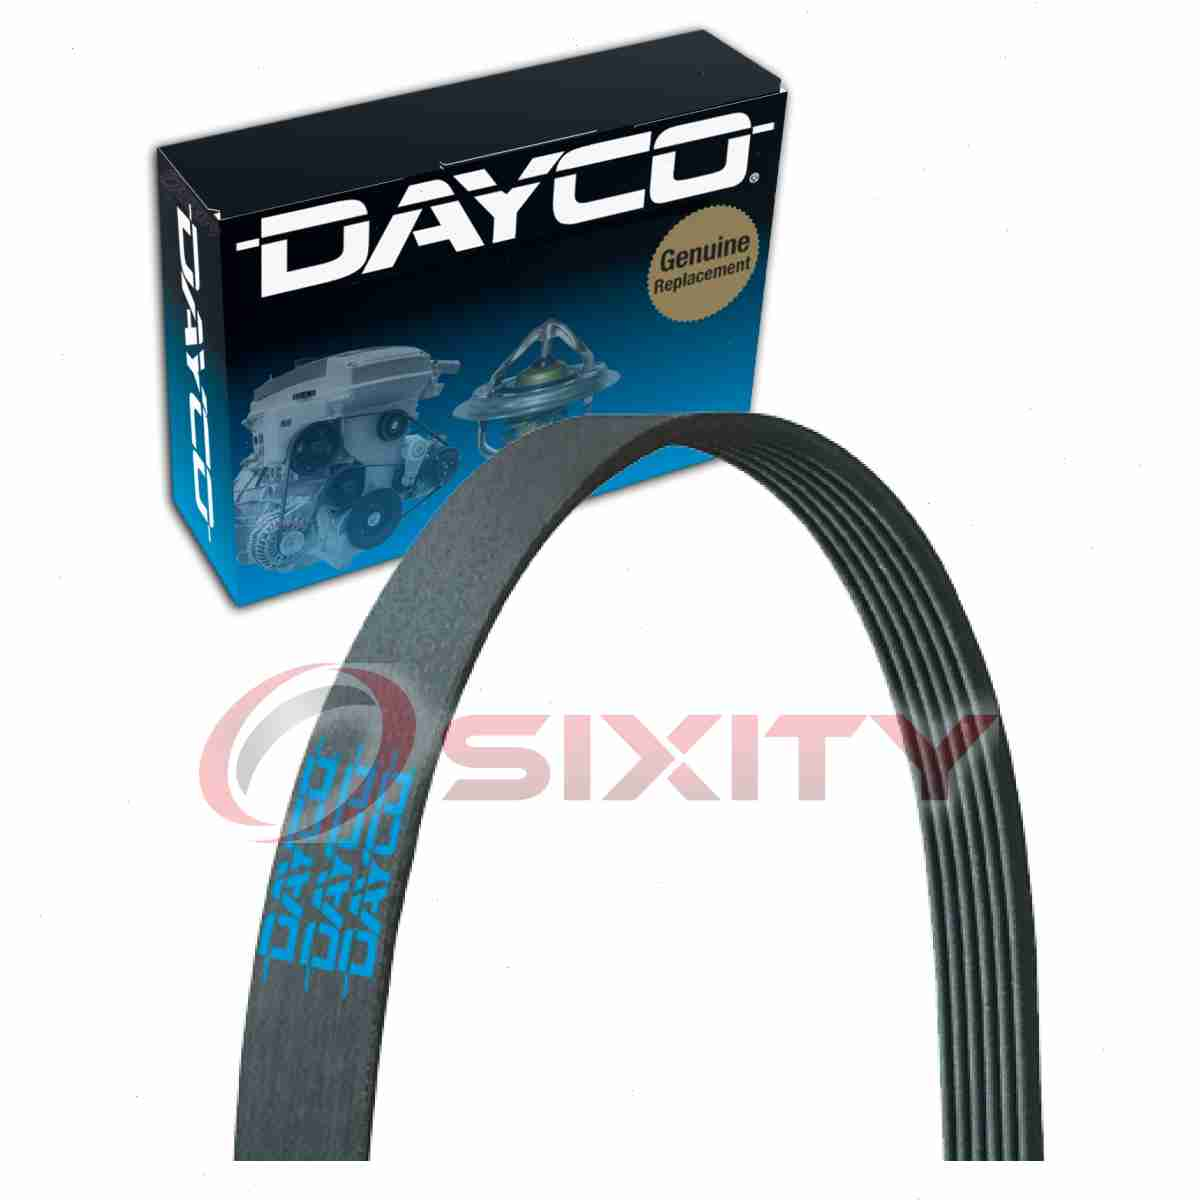 Dayco Serpentine Belt For 20052006 Audi A4 Quattro 30l V6 V. Built For Passenger Cars And Lightduty Trucks The Extensive Line Of Dayco Poly Rib Serpentine Belts Are Engineered High Mileage Demanding Drives. Audi. 2006 Audi A4 Belt Diagram At Scoala.co